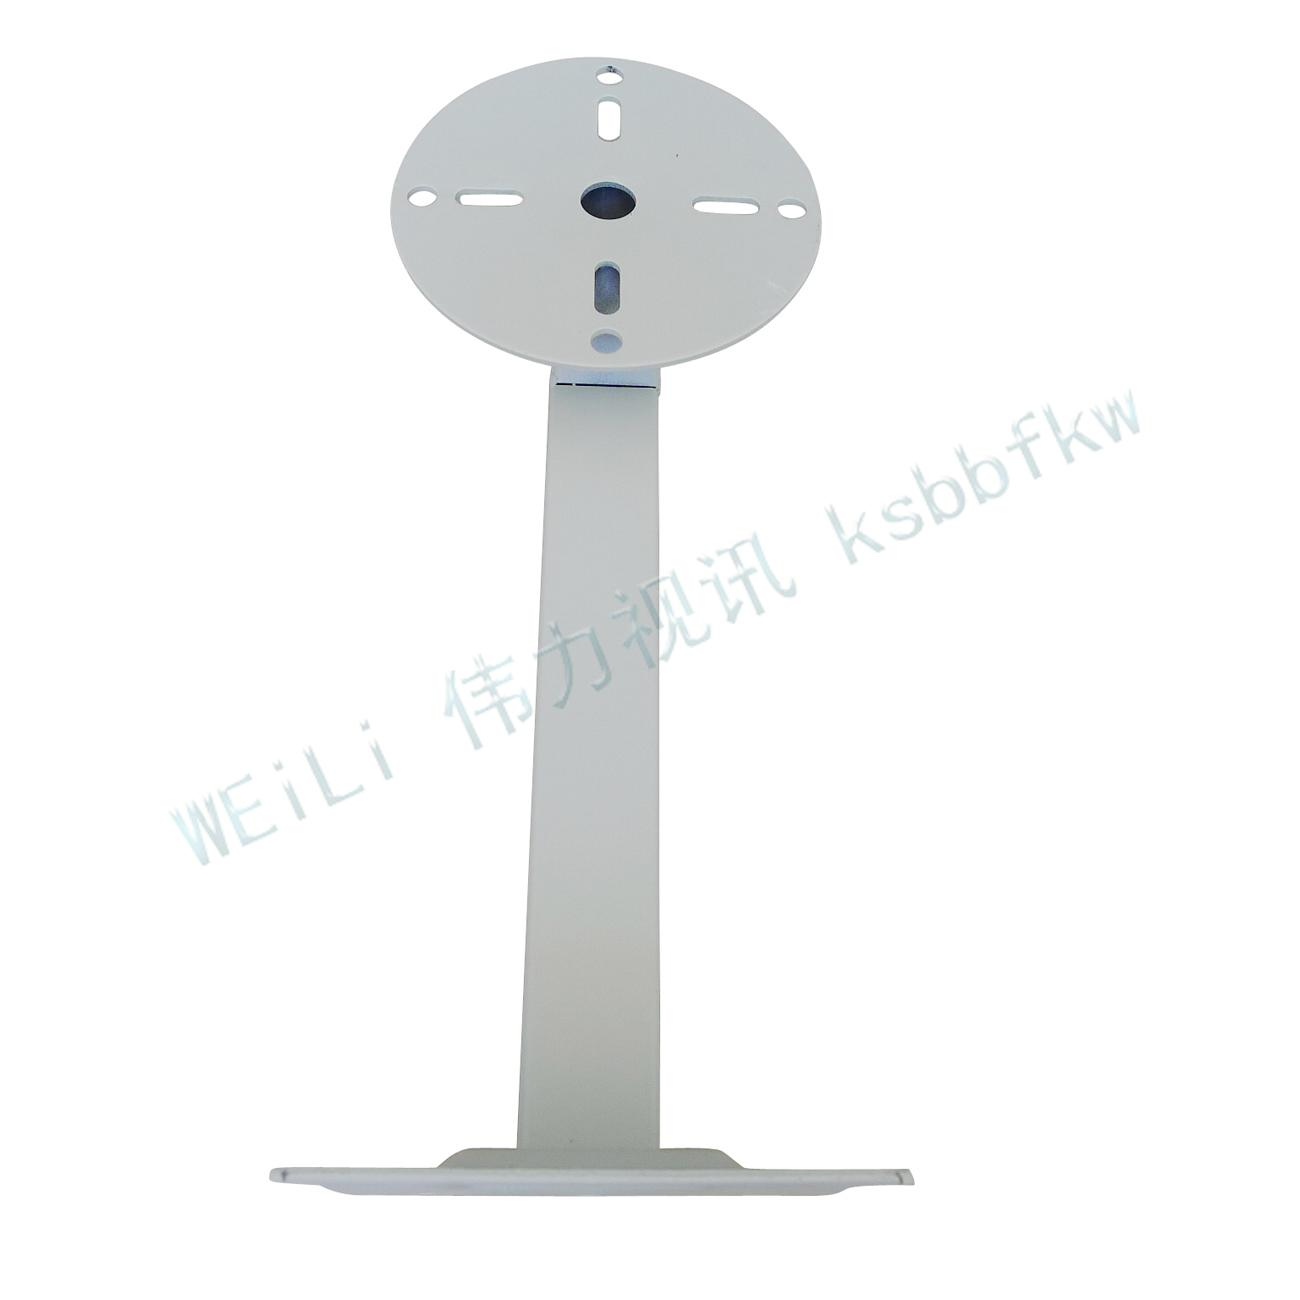 Putianshi PTS-5012M outdoor platform bracket 301 303 Yuntai 8080A explosion-proof cover heavy bracket